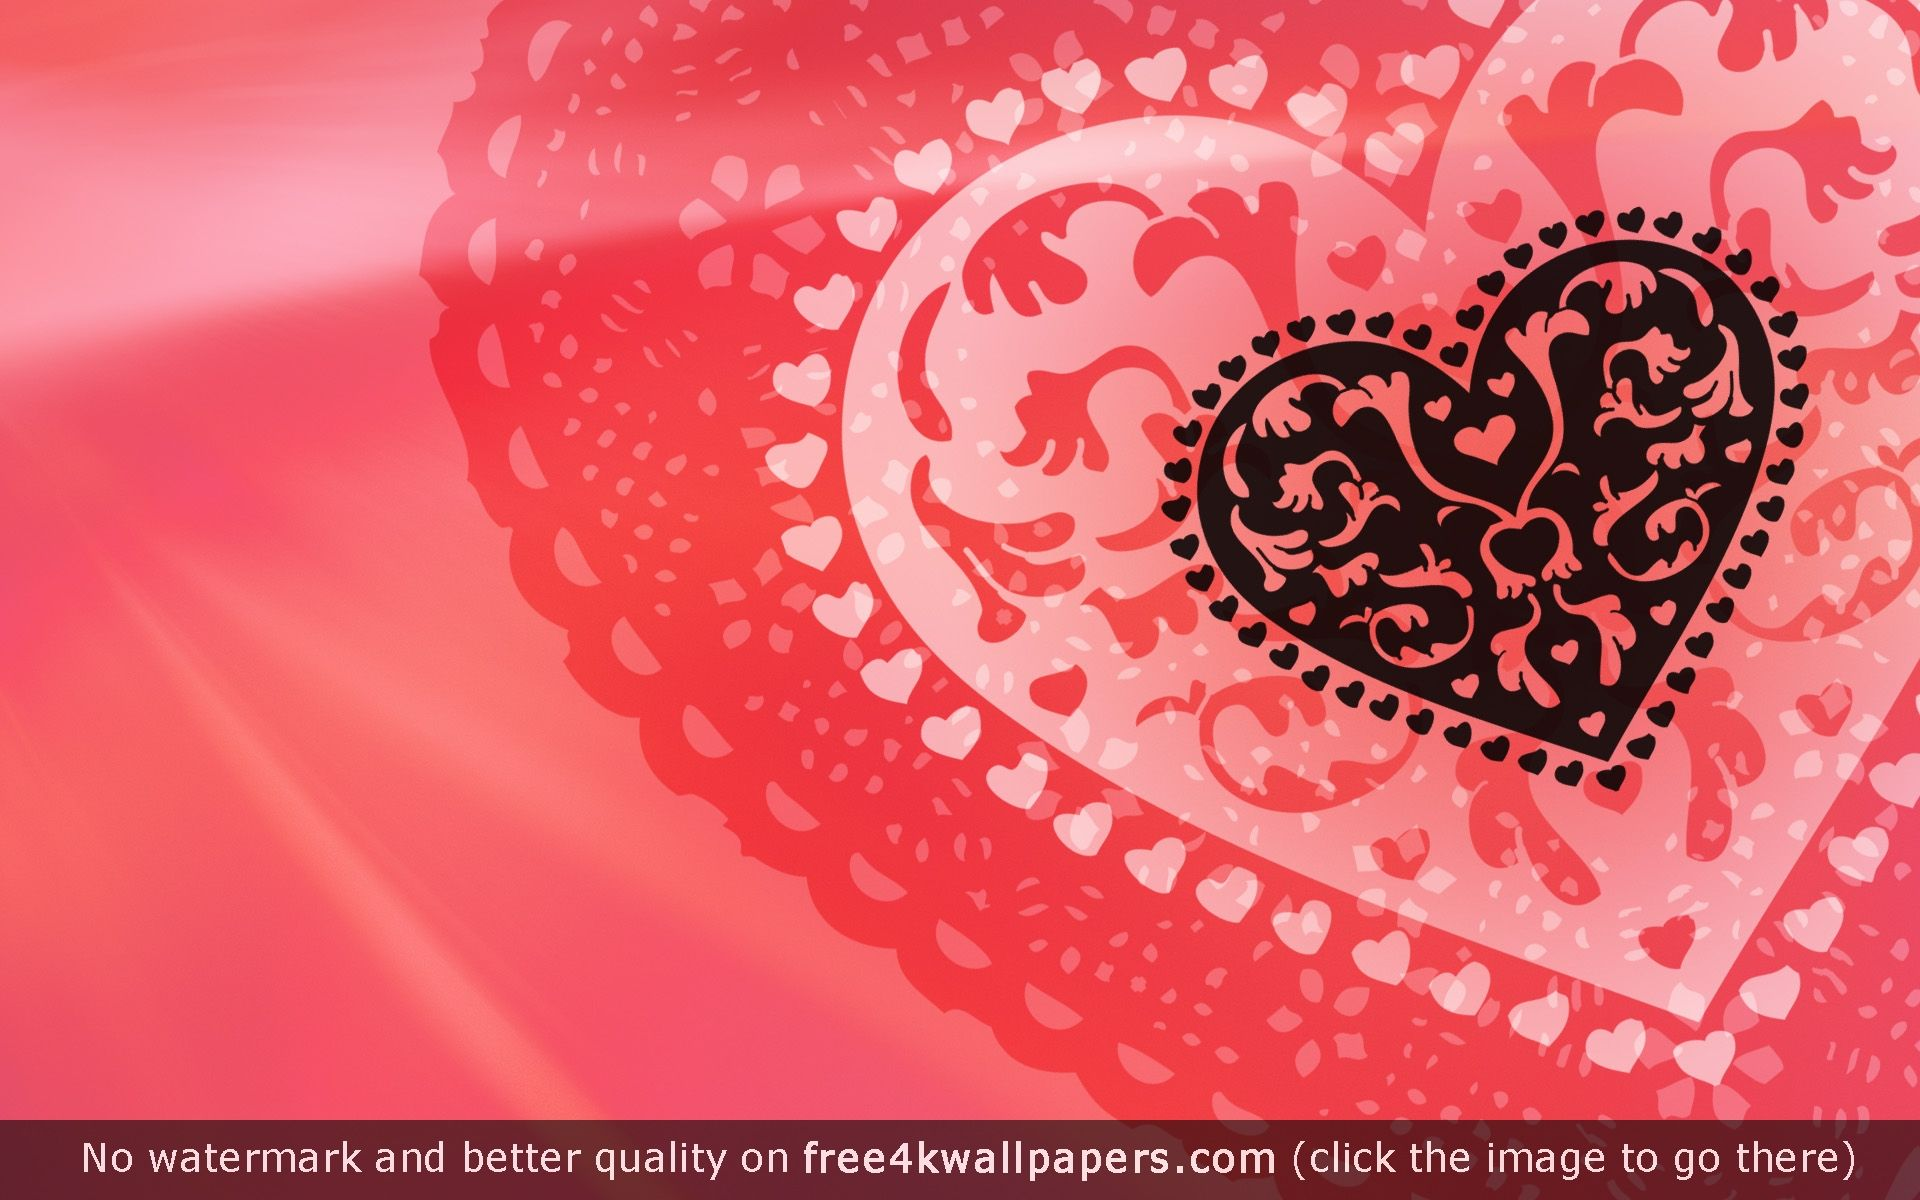 Love Hearts Abstract Valentine Hd Wallpaper Love Wallpaper Valentines Wallpaper Heart Wallpaper